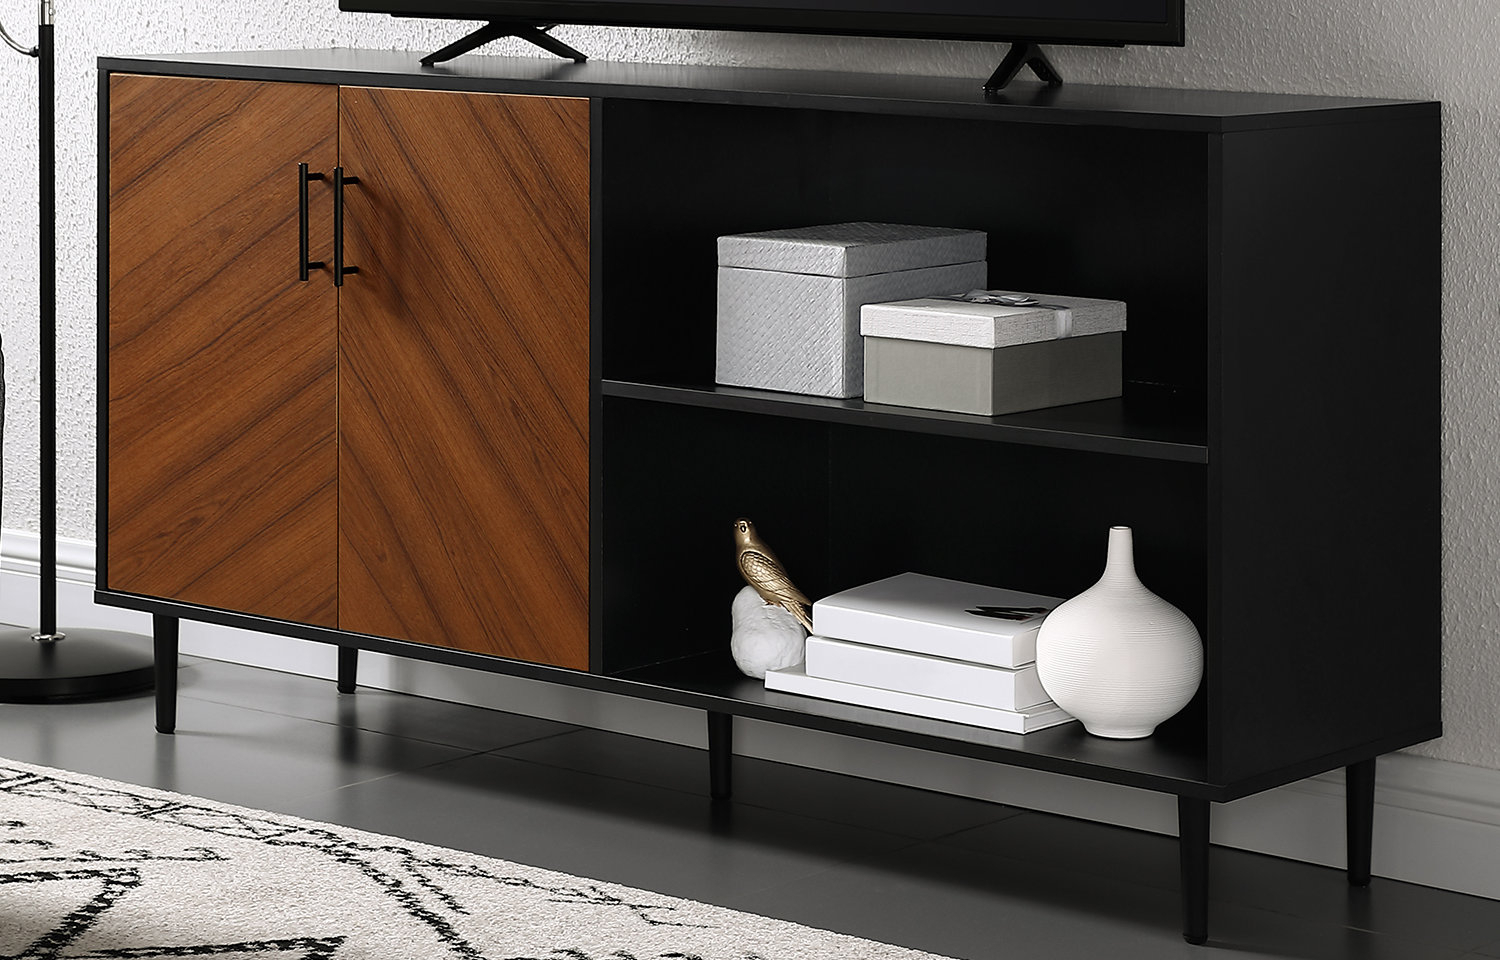 Mid-Century Modern Tv Stands You'll Love | Wayfair inside Century Blue 60 Inch Tv Stands (Image 12 of 30)